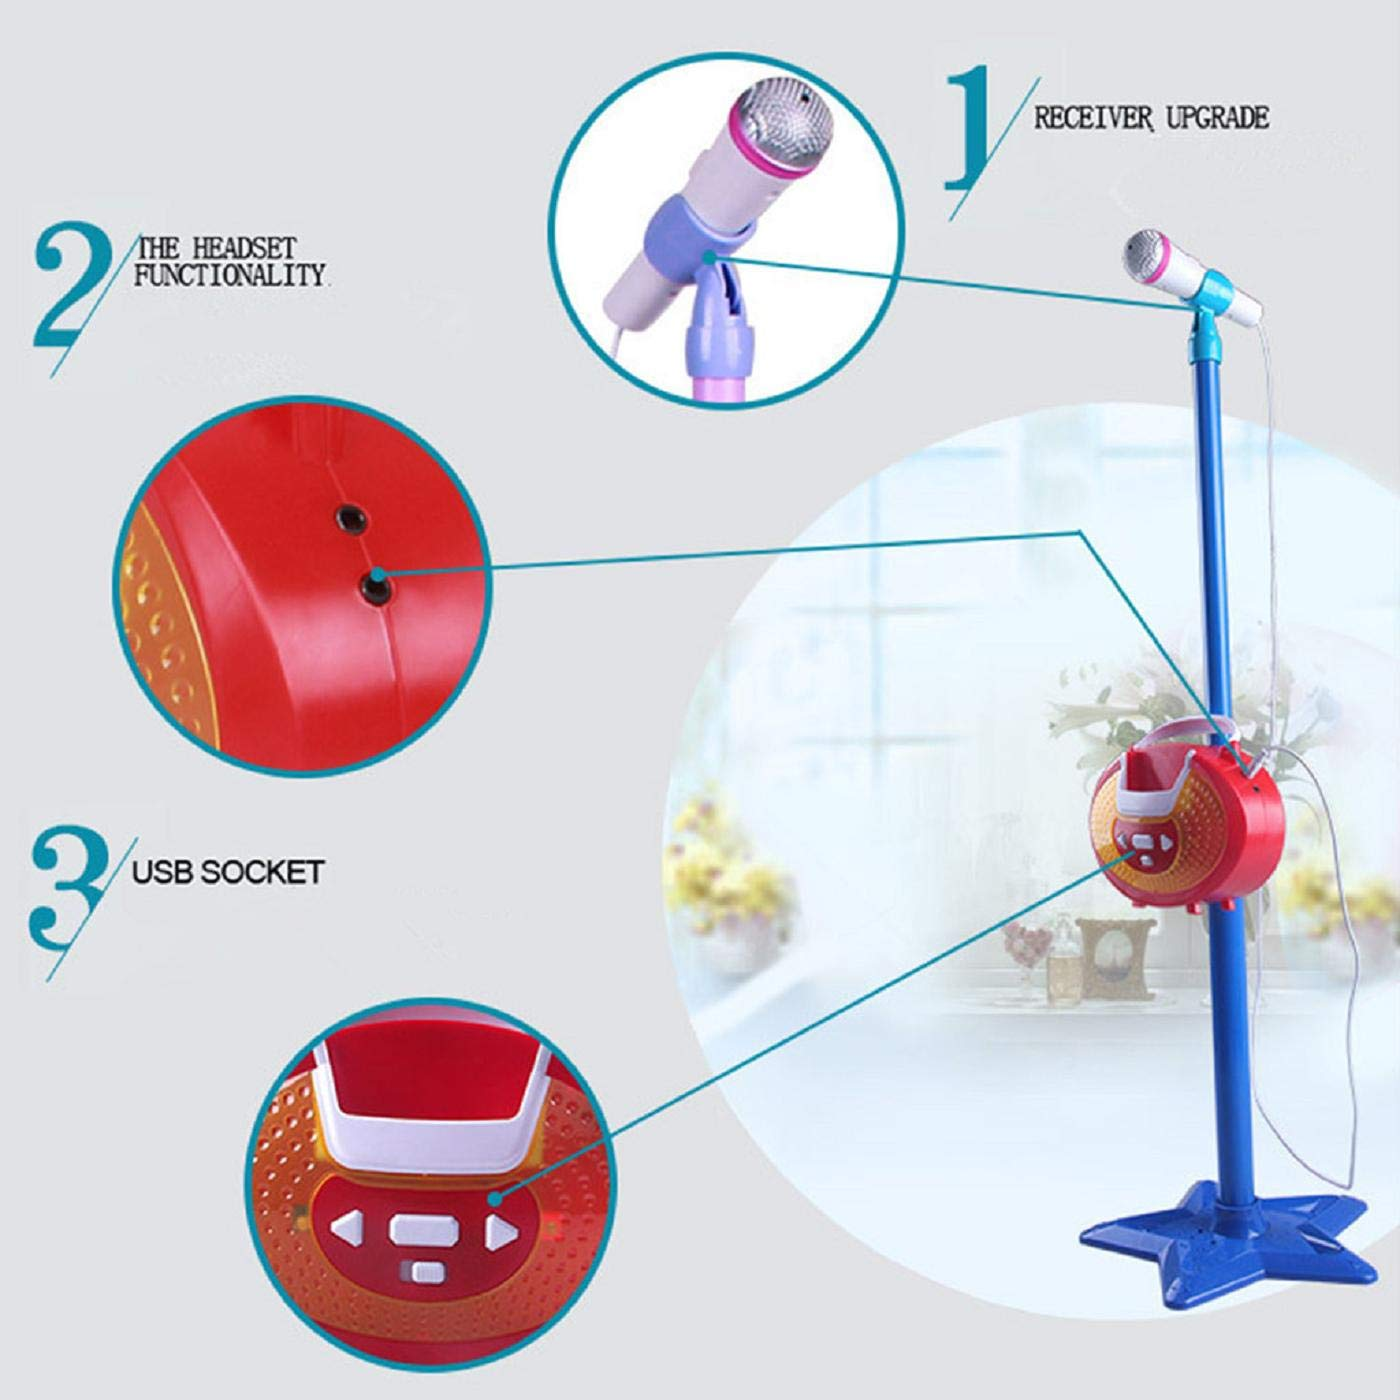 Putars Kids Girls Mp3 KaraokeMicrophone Adjustable Stand Light Sound,Music Sing Along with Flashing Stage Lights and Pedals for Fun,Microphone and Mic Stand - Online Exclusive by Putars toy (Image #4)